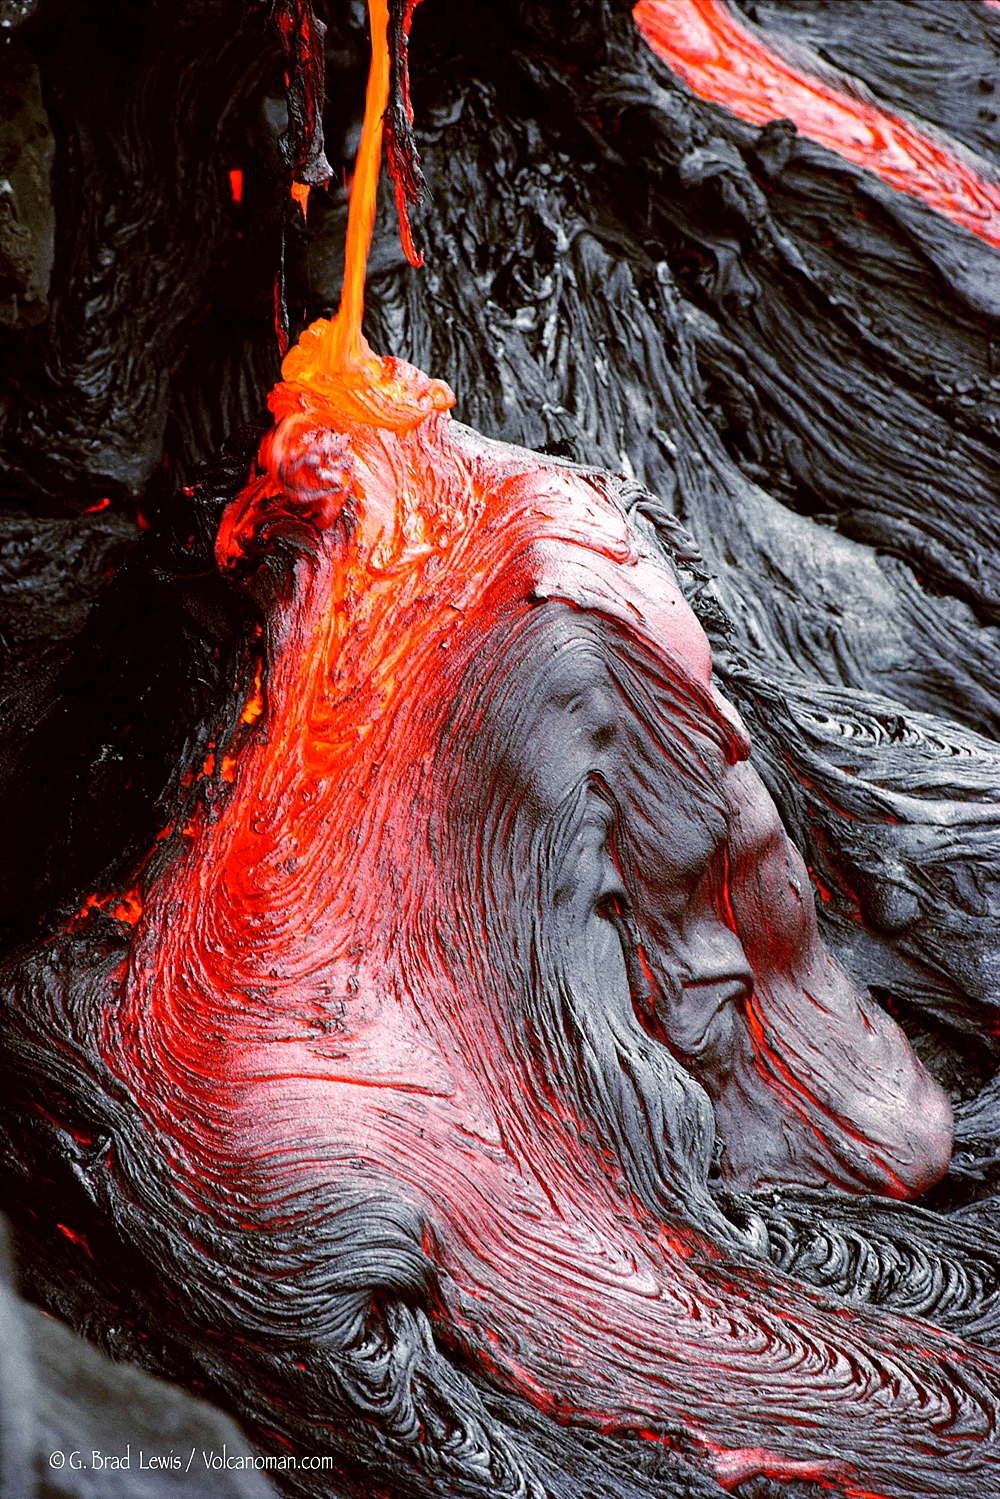 Lava Masquerade - Image by Brad Lewis